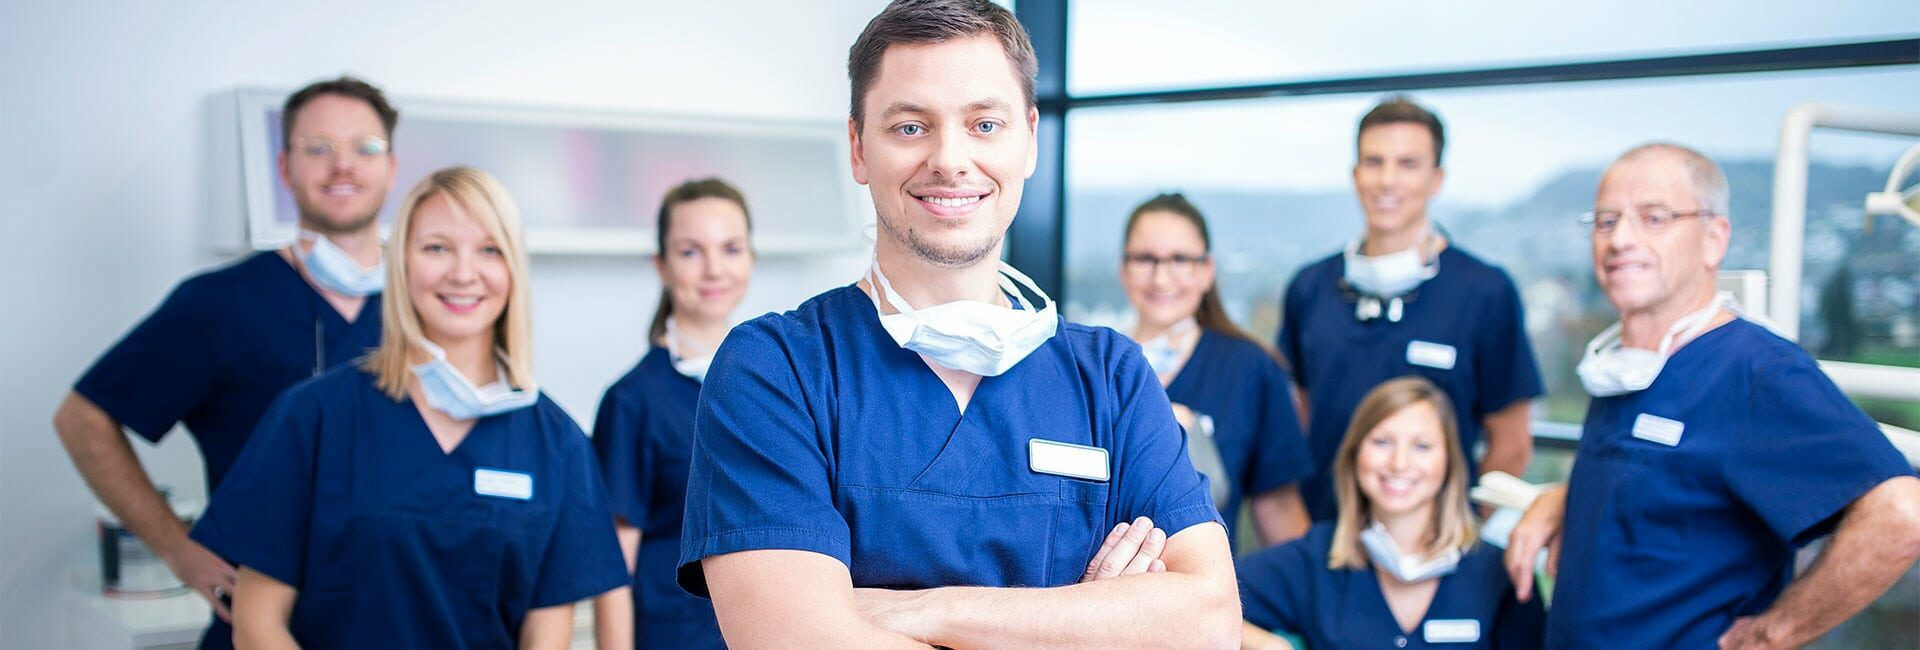 Cheap Dentist Germany Contact | Dr. HAGER